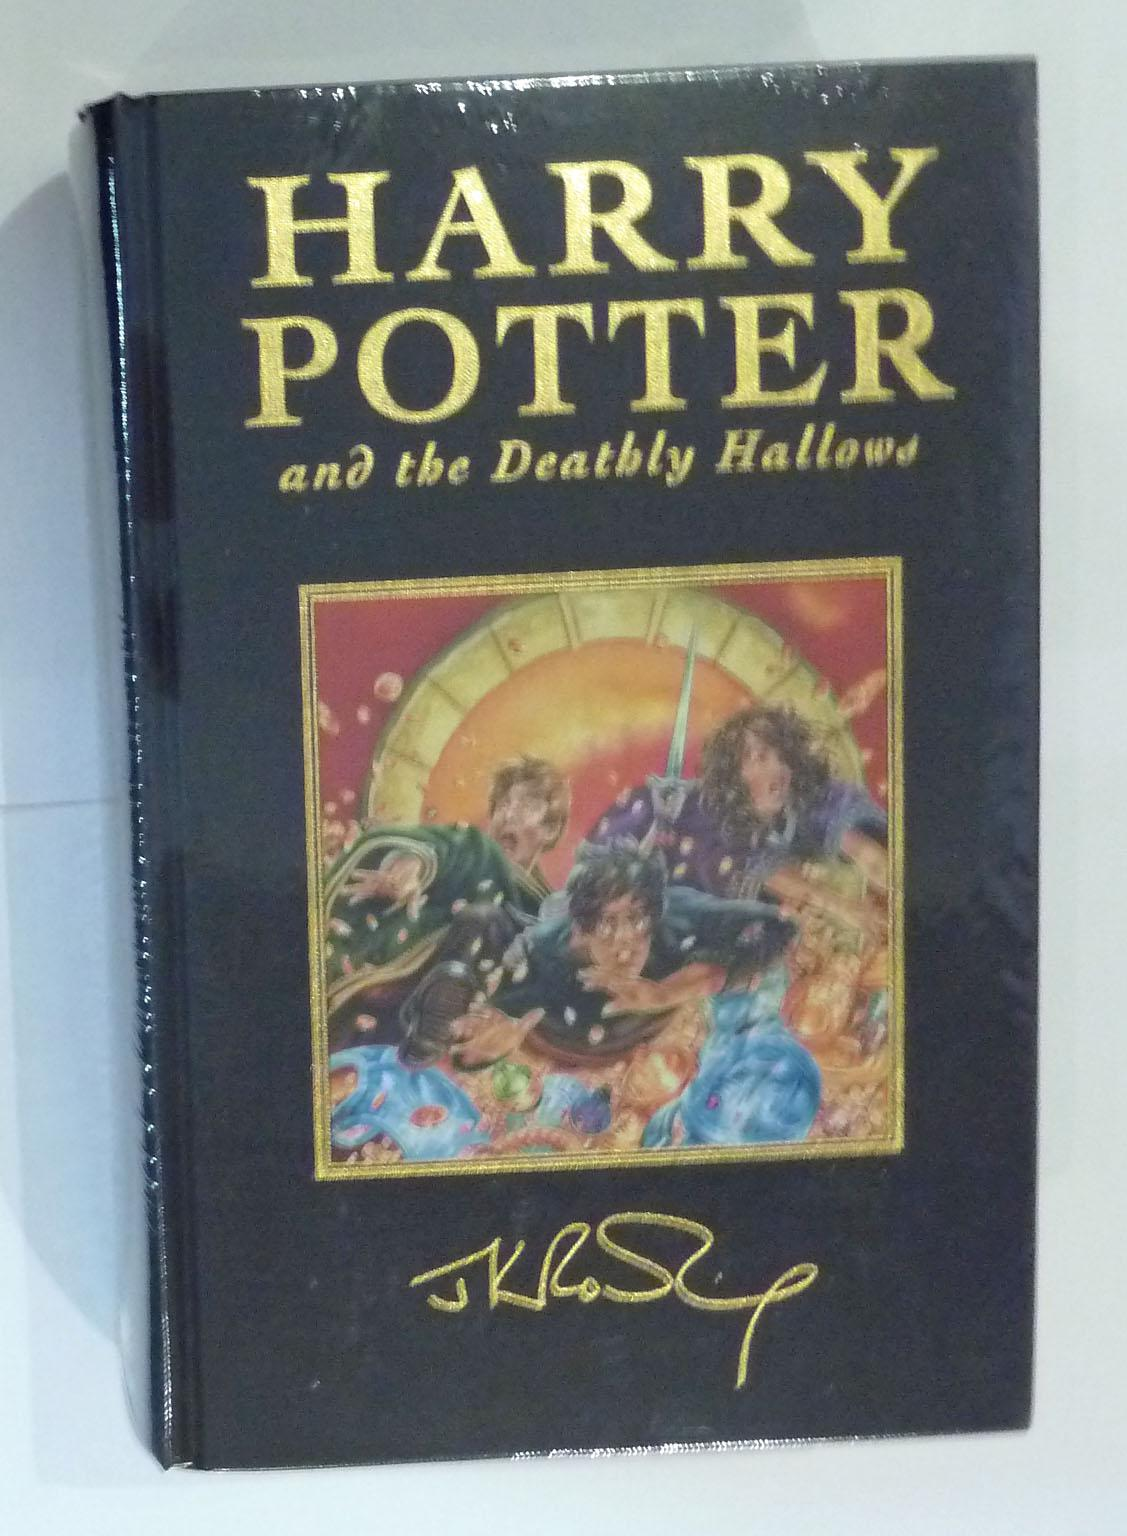 Harry Potter and the Deathly Hallows De-Luxe Edition